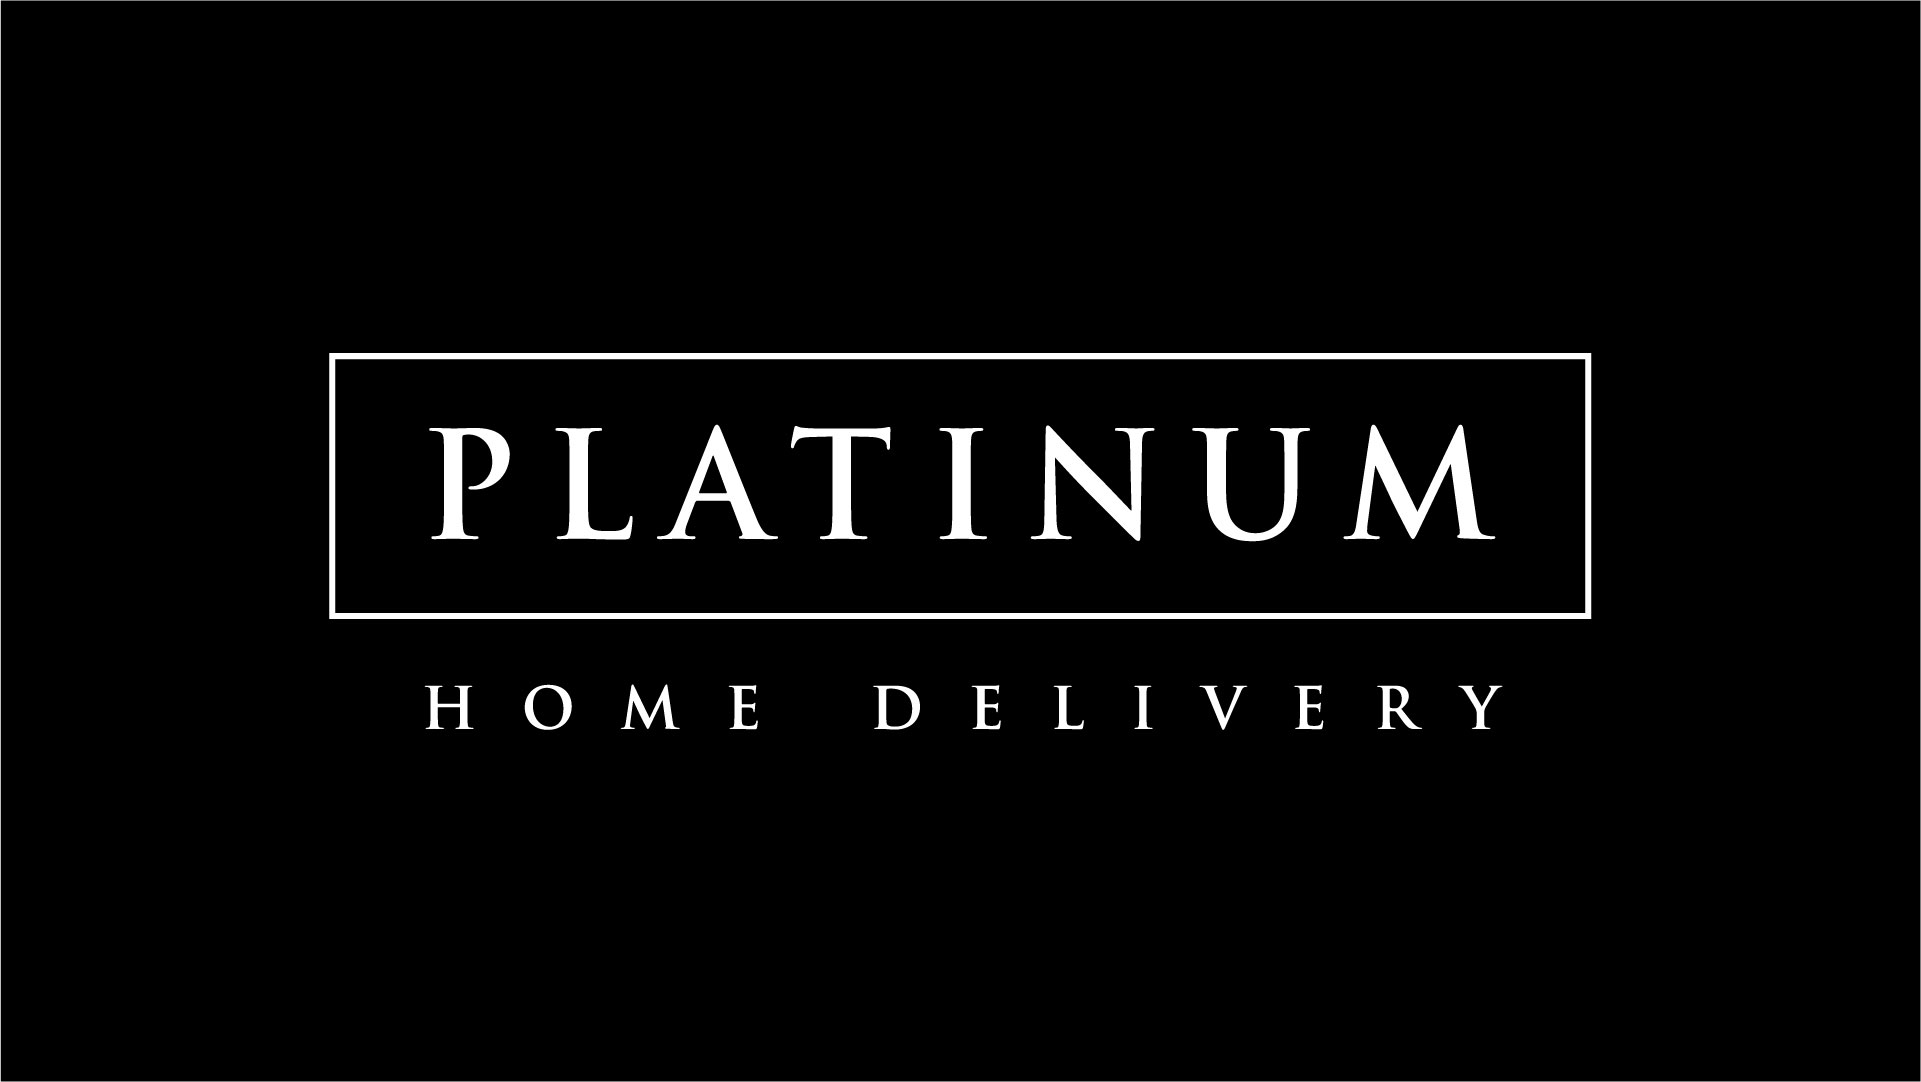 Platinum Home Delivery